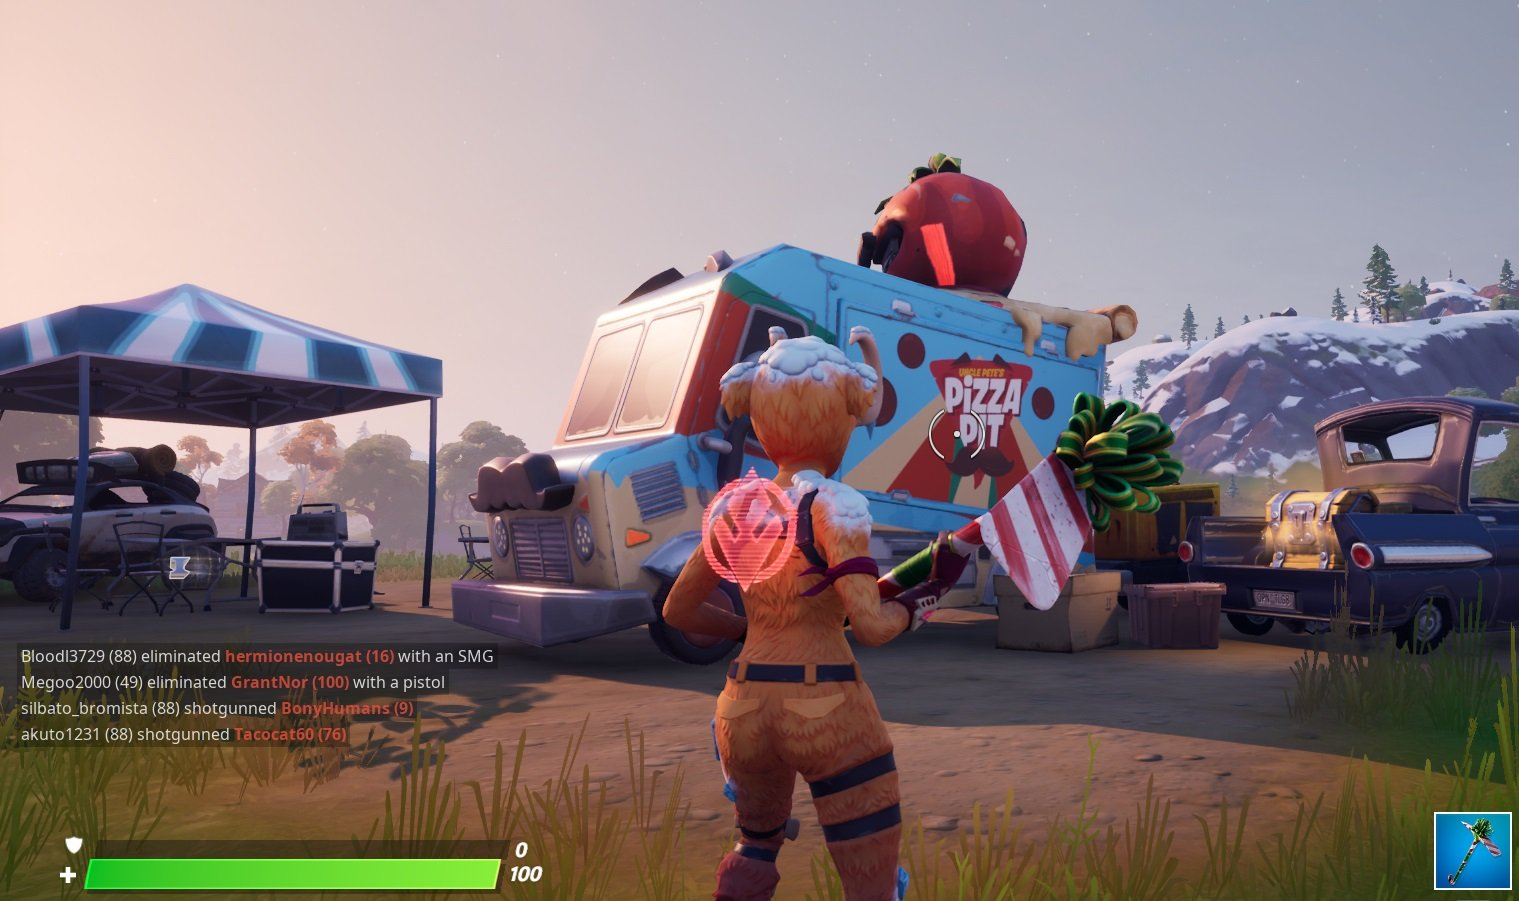 The location of the Pizza Pit Food Truck in Fortnite.